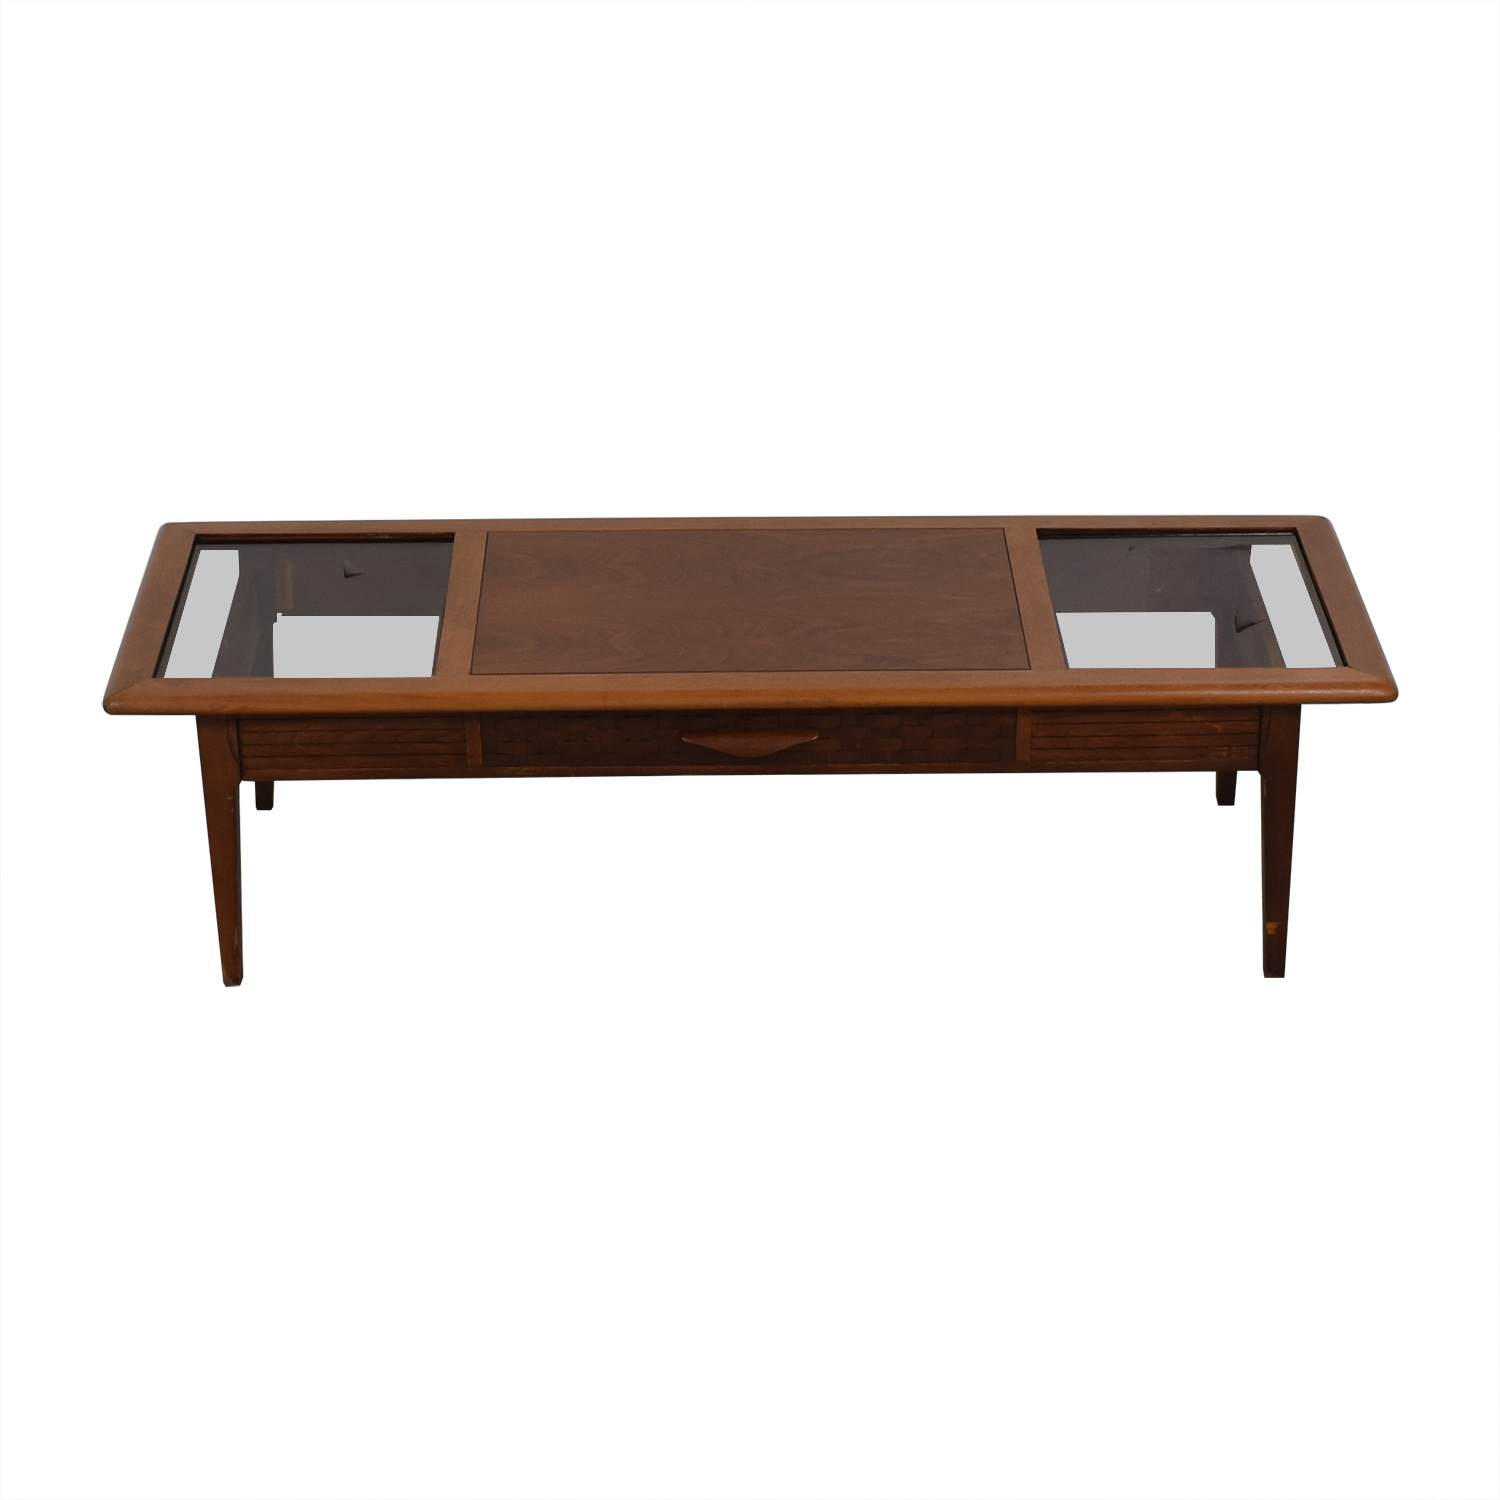 buy Lane Furniture Lane Furniture Vintage Glass and Wood Coffee Table online